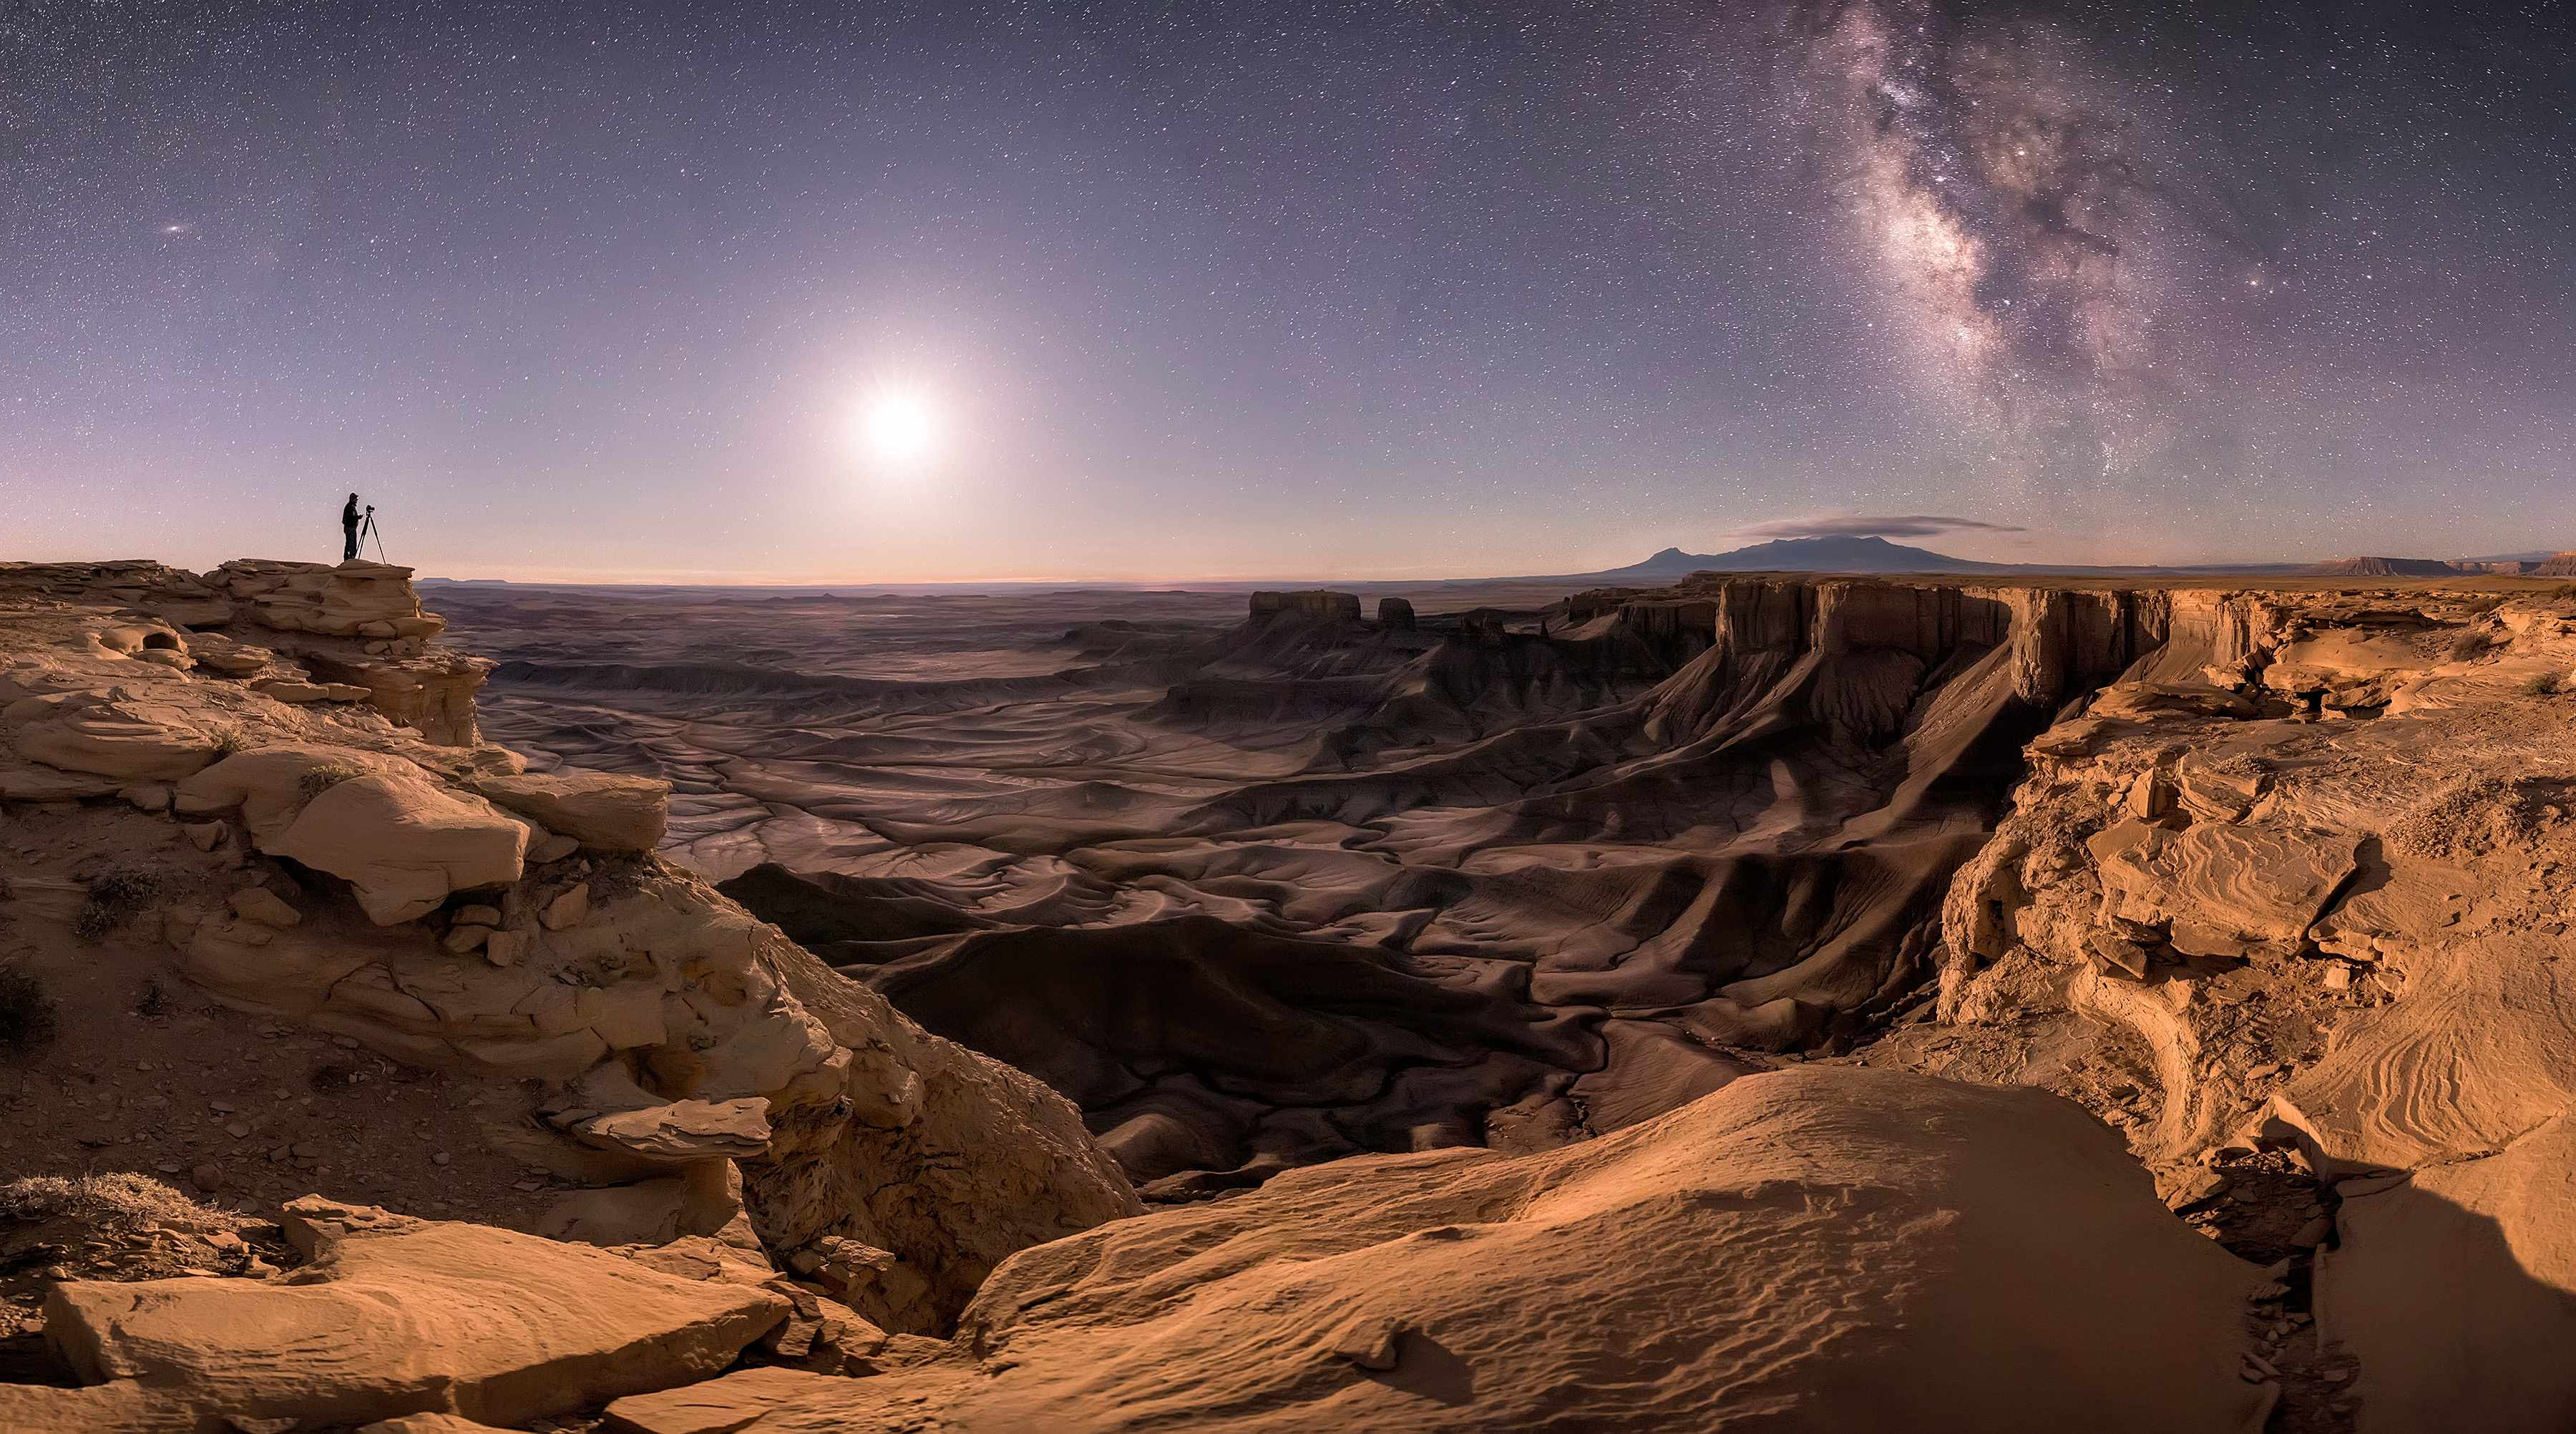 Transport the Soul, Brad Goldpaint, Moab, Utah, USA, 20 May 2017. Equipment: Nikon D810 DLSR camera, 14mm f/4.0 lens. Category: People & Space (Overall winner)